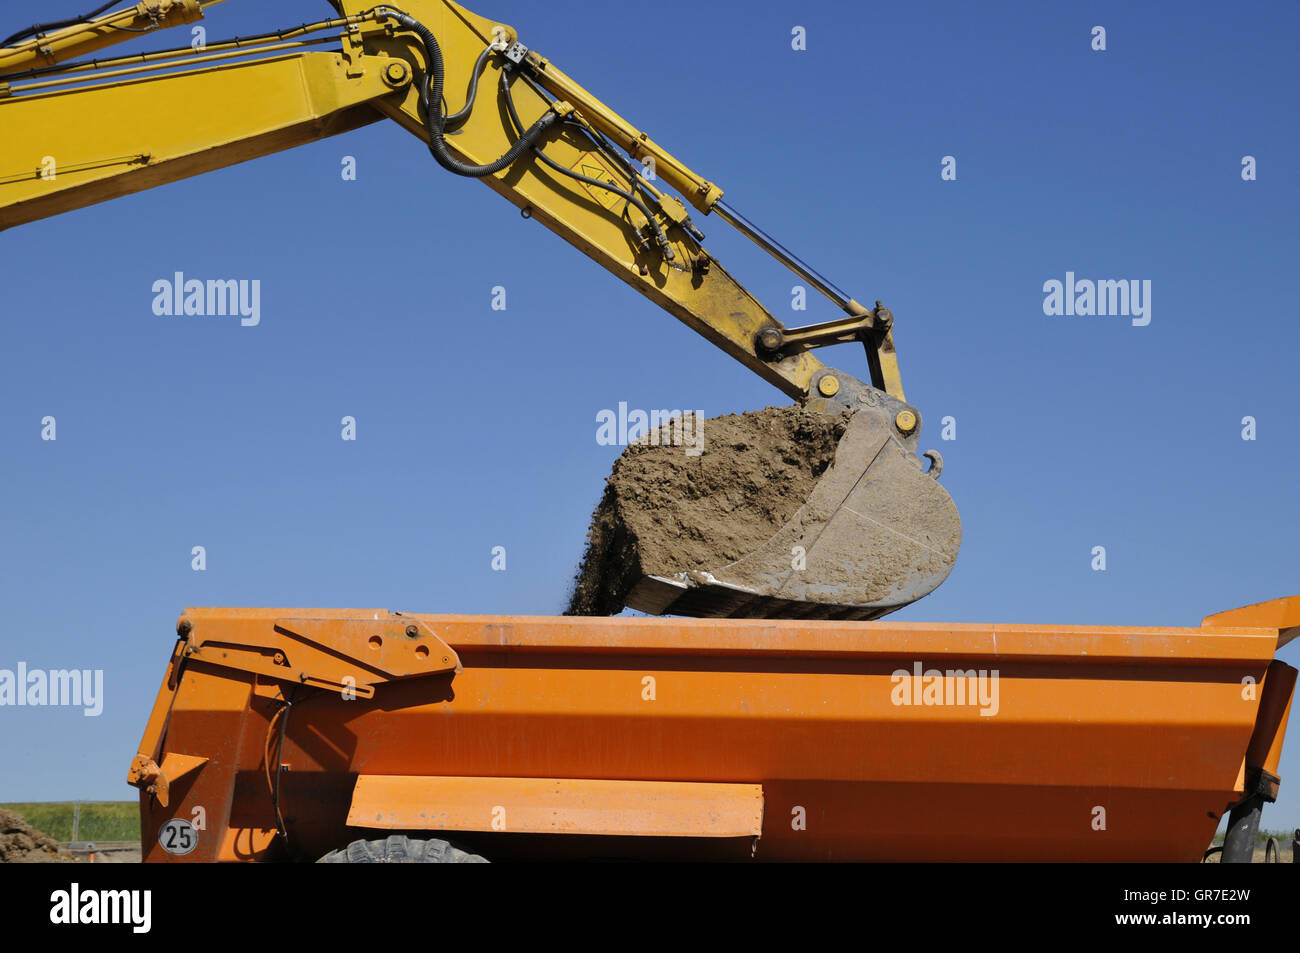 Excavator Truck Filled - Stock Image